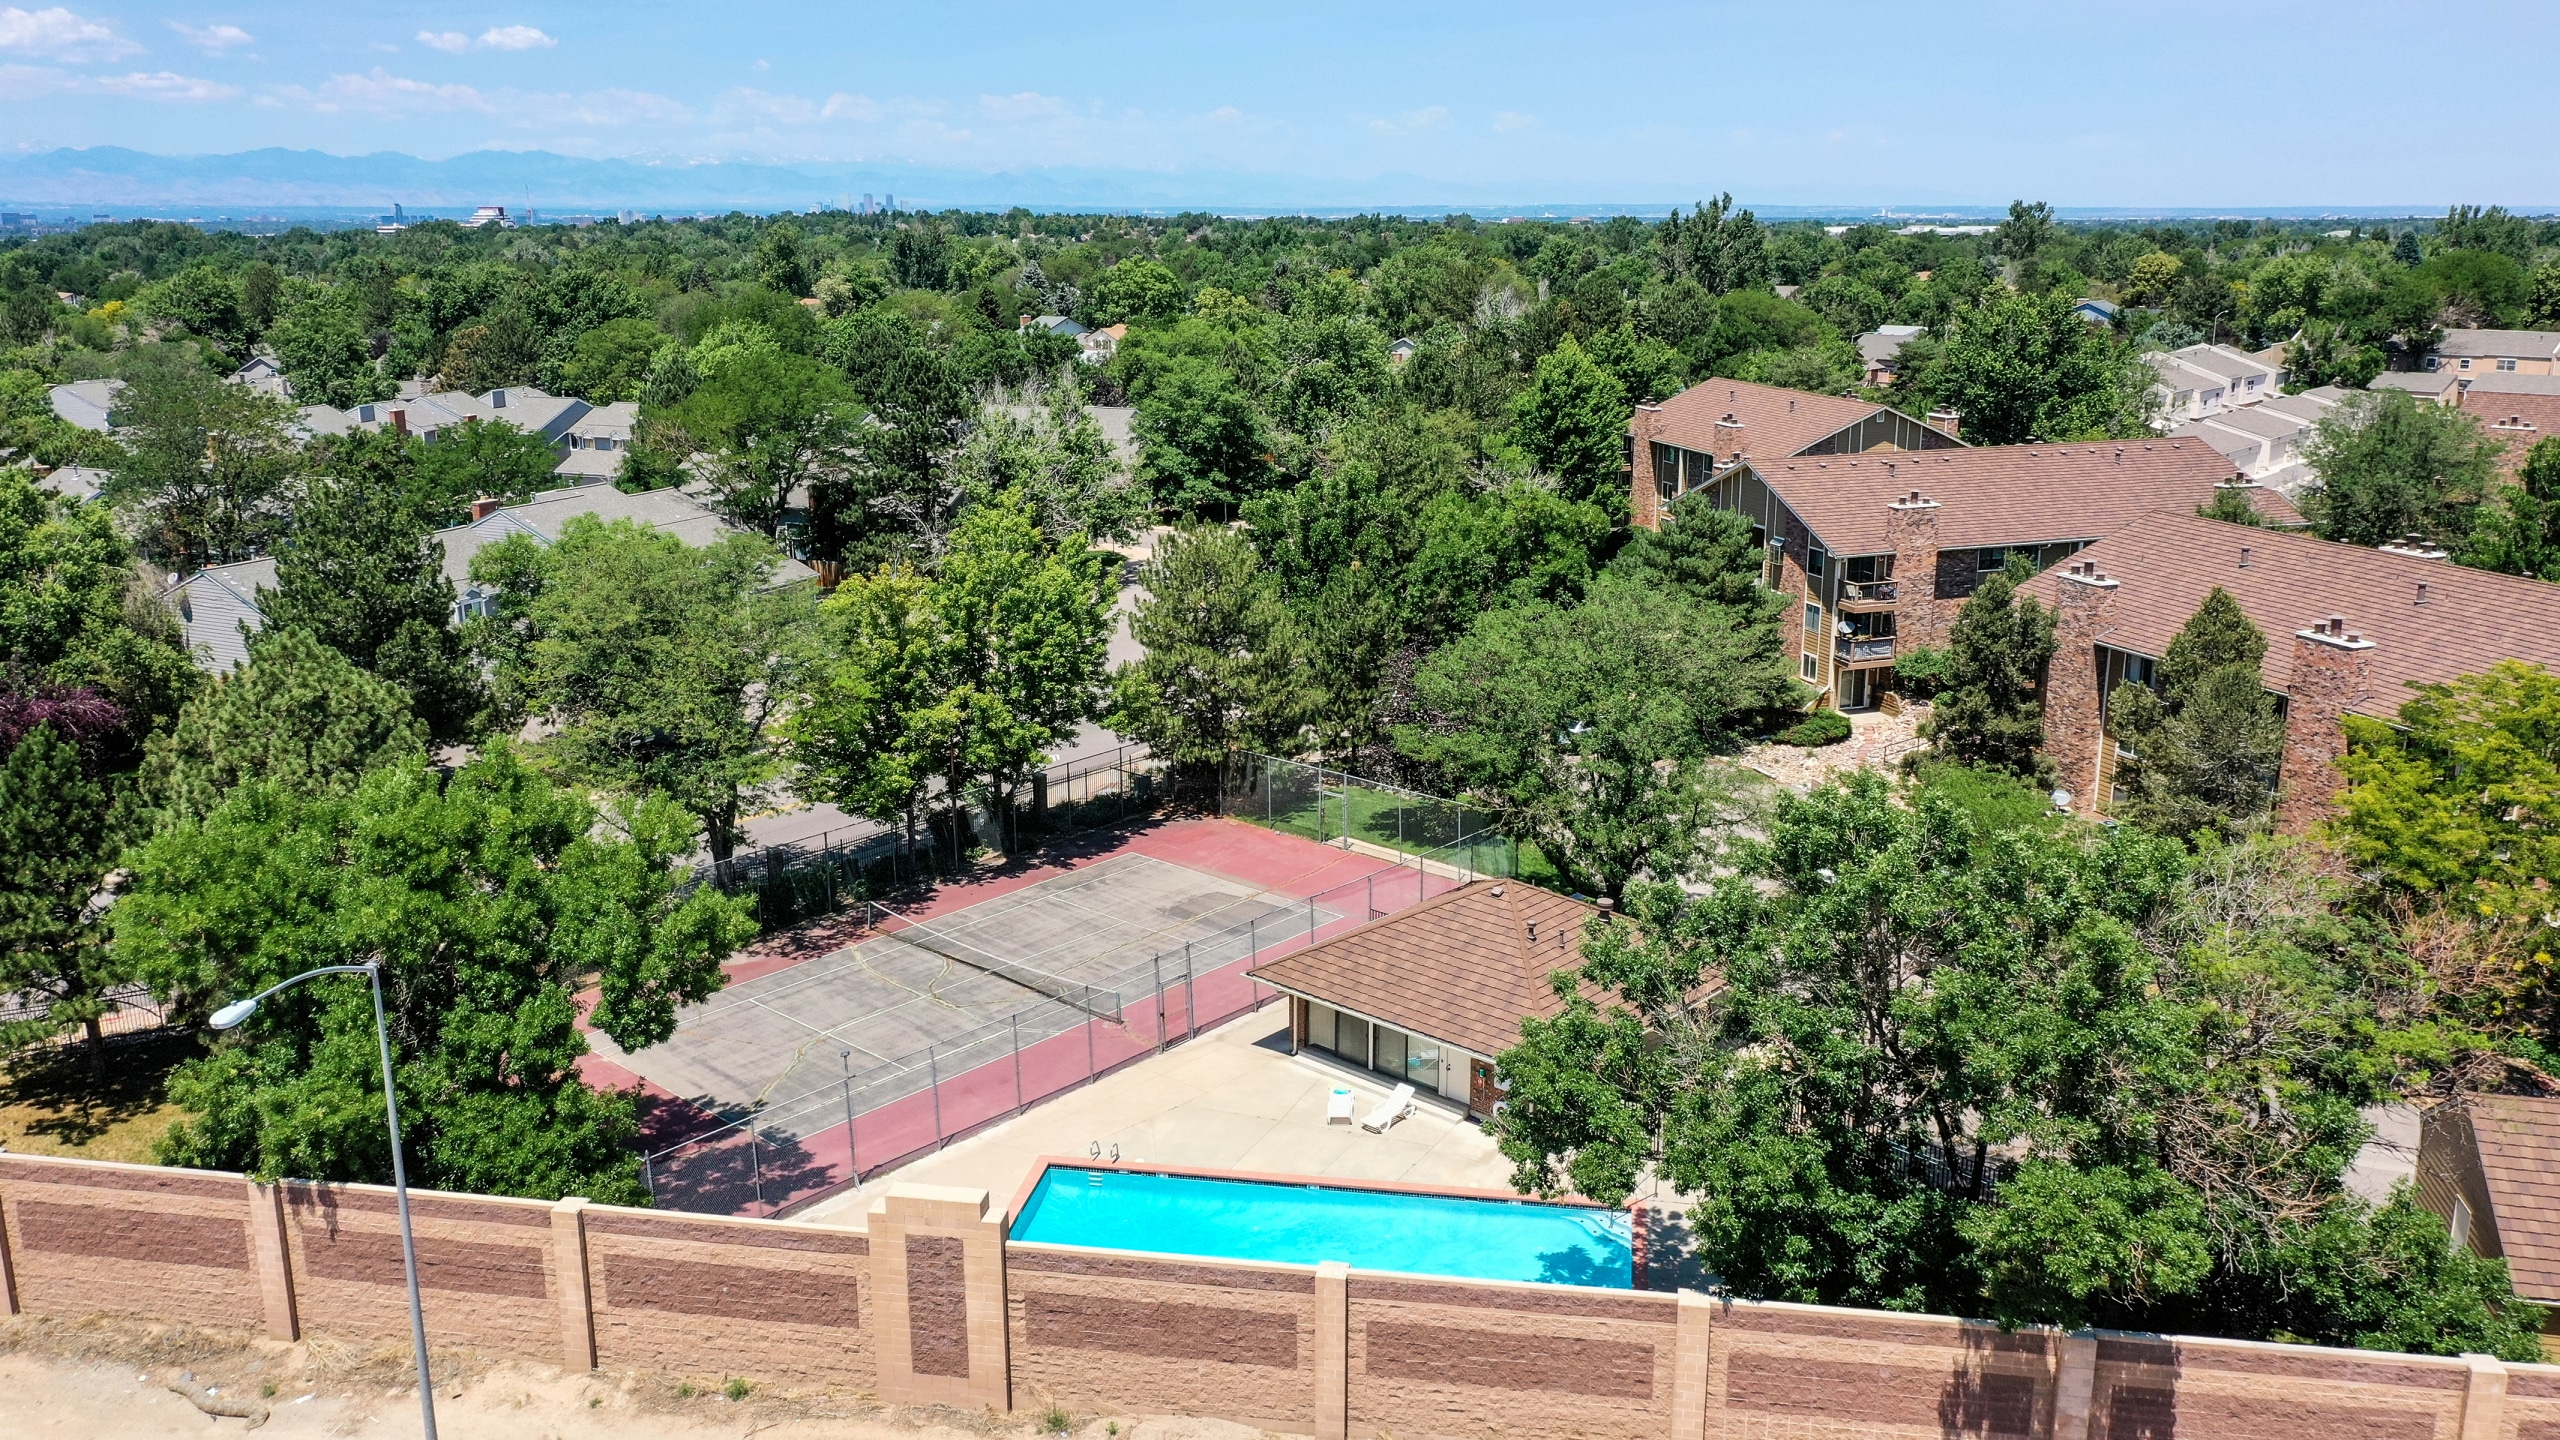 Drone View of Spinnaker Run II Condo Pool and Tennis Courts in Aurora, CO